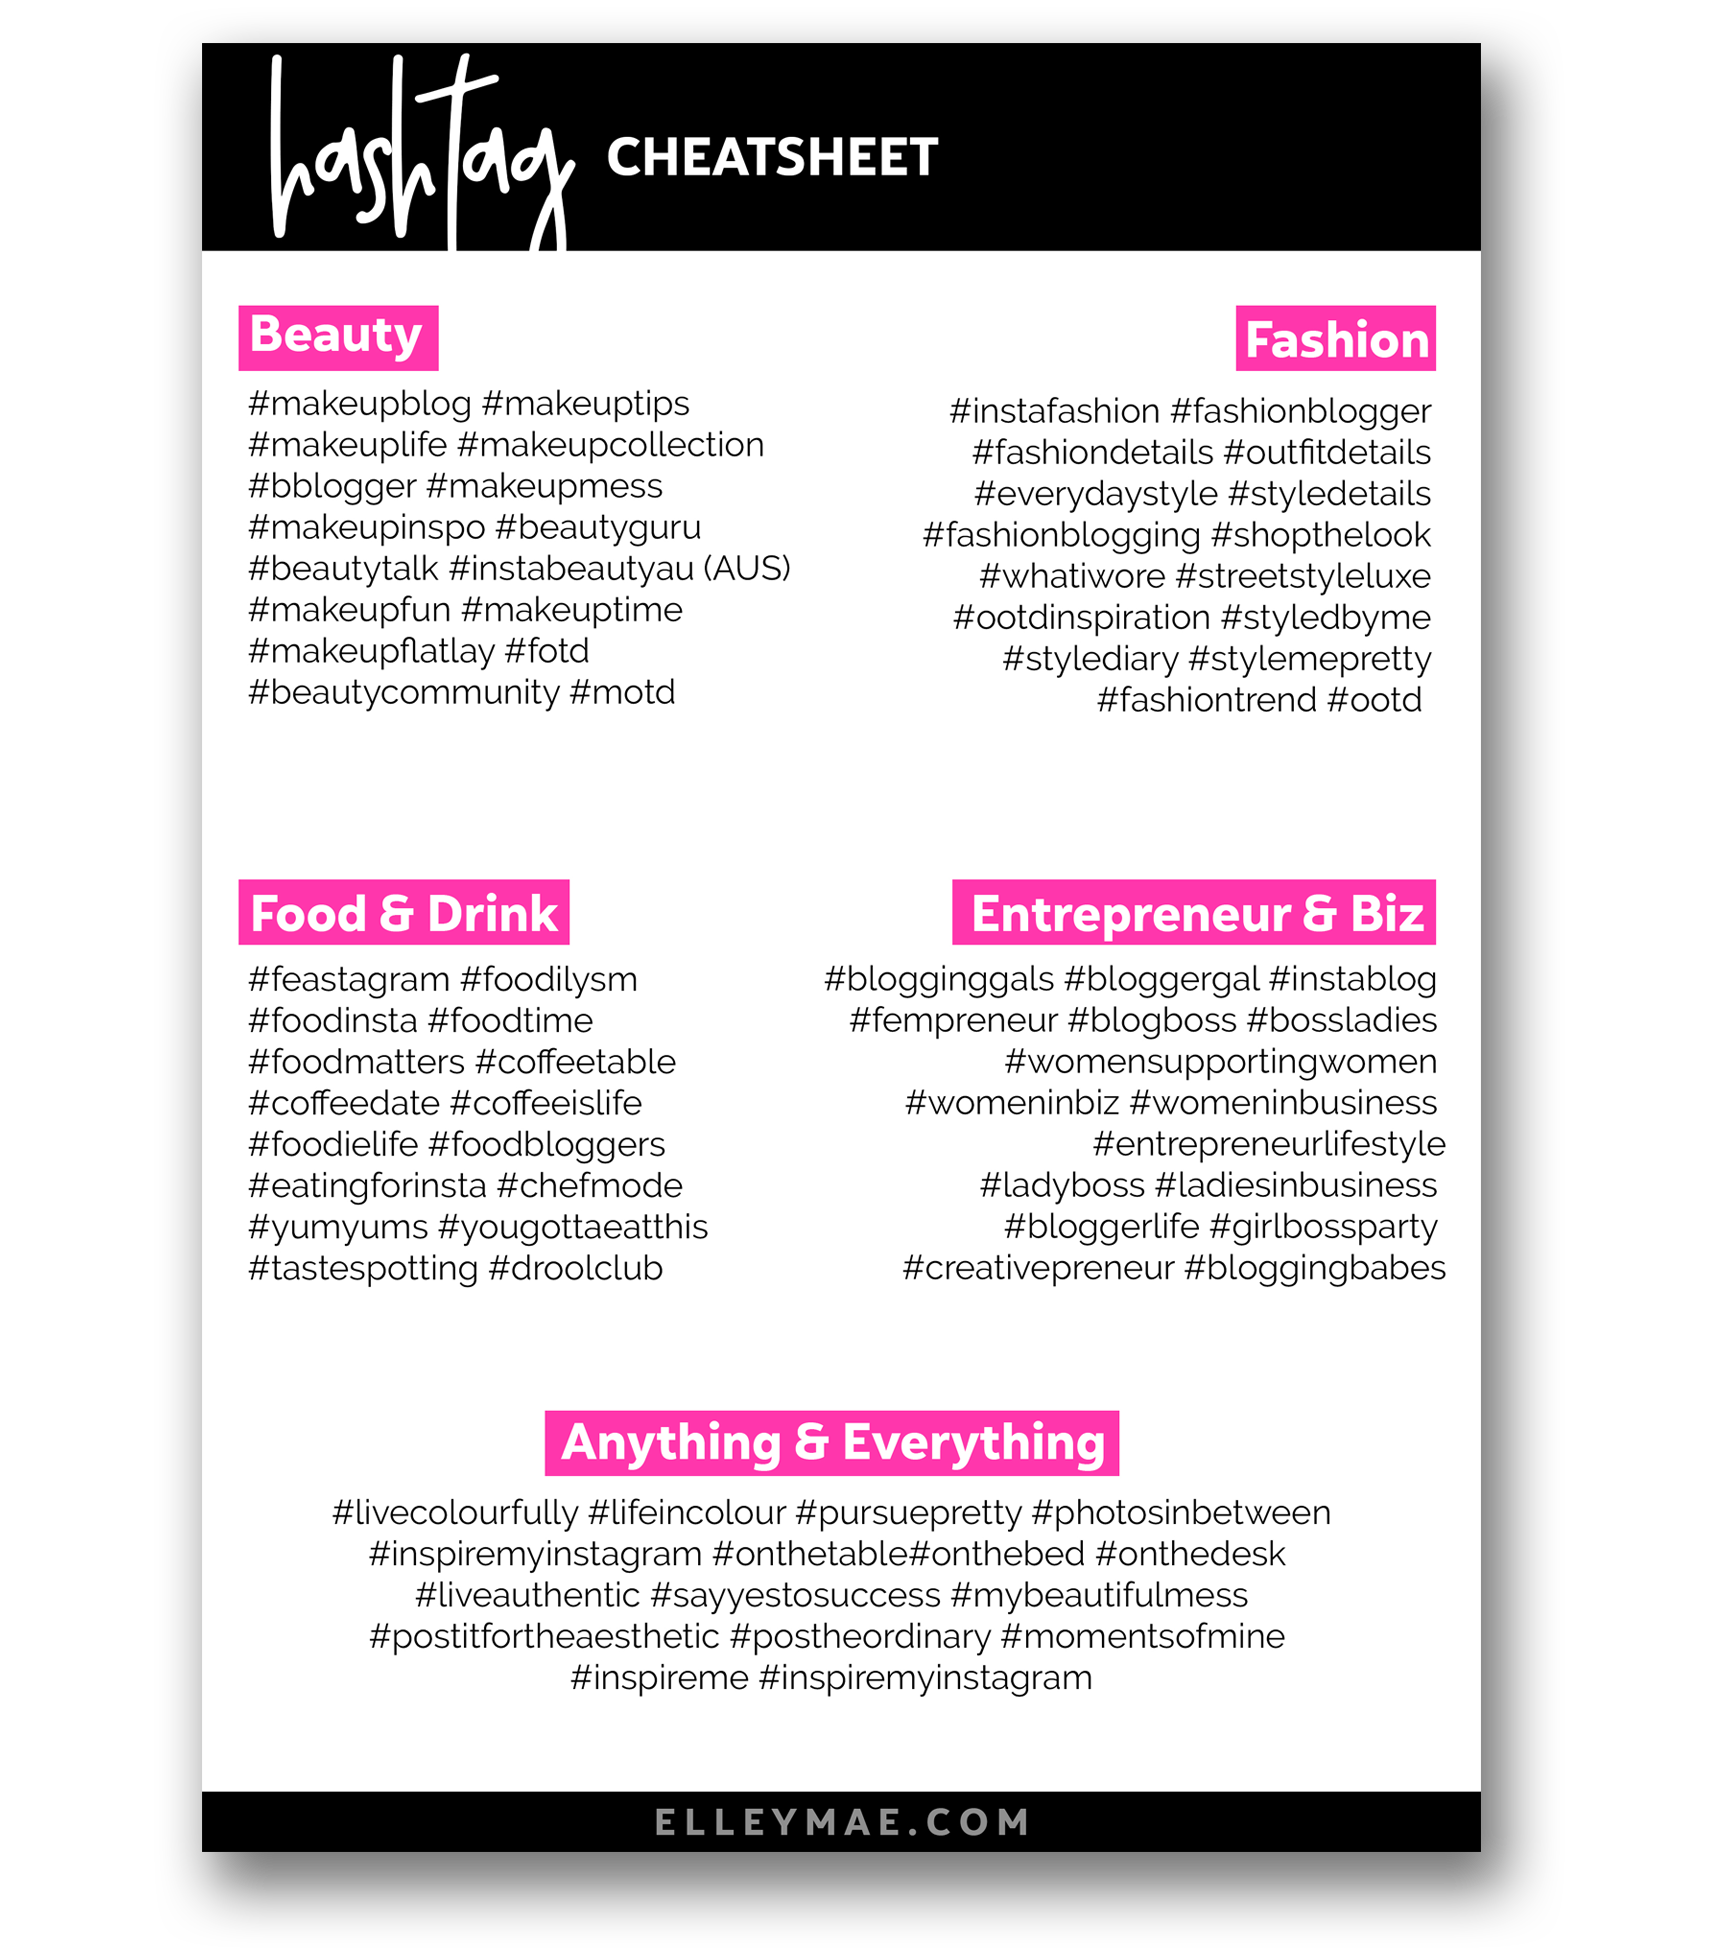 80 Killer Instagram Hashtags to boost your Instagram engagement - Download the free hashtag cheatsheet to grow your Instagram, get Instagram followers & just become an all-round Instagram superstar. Free from ElleyMae.com